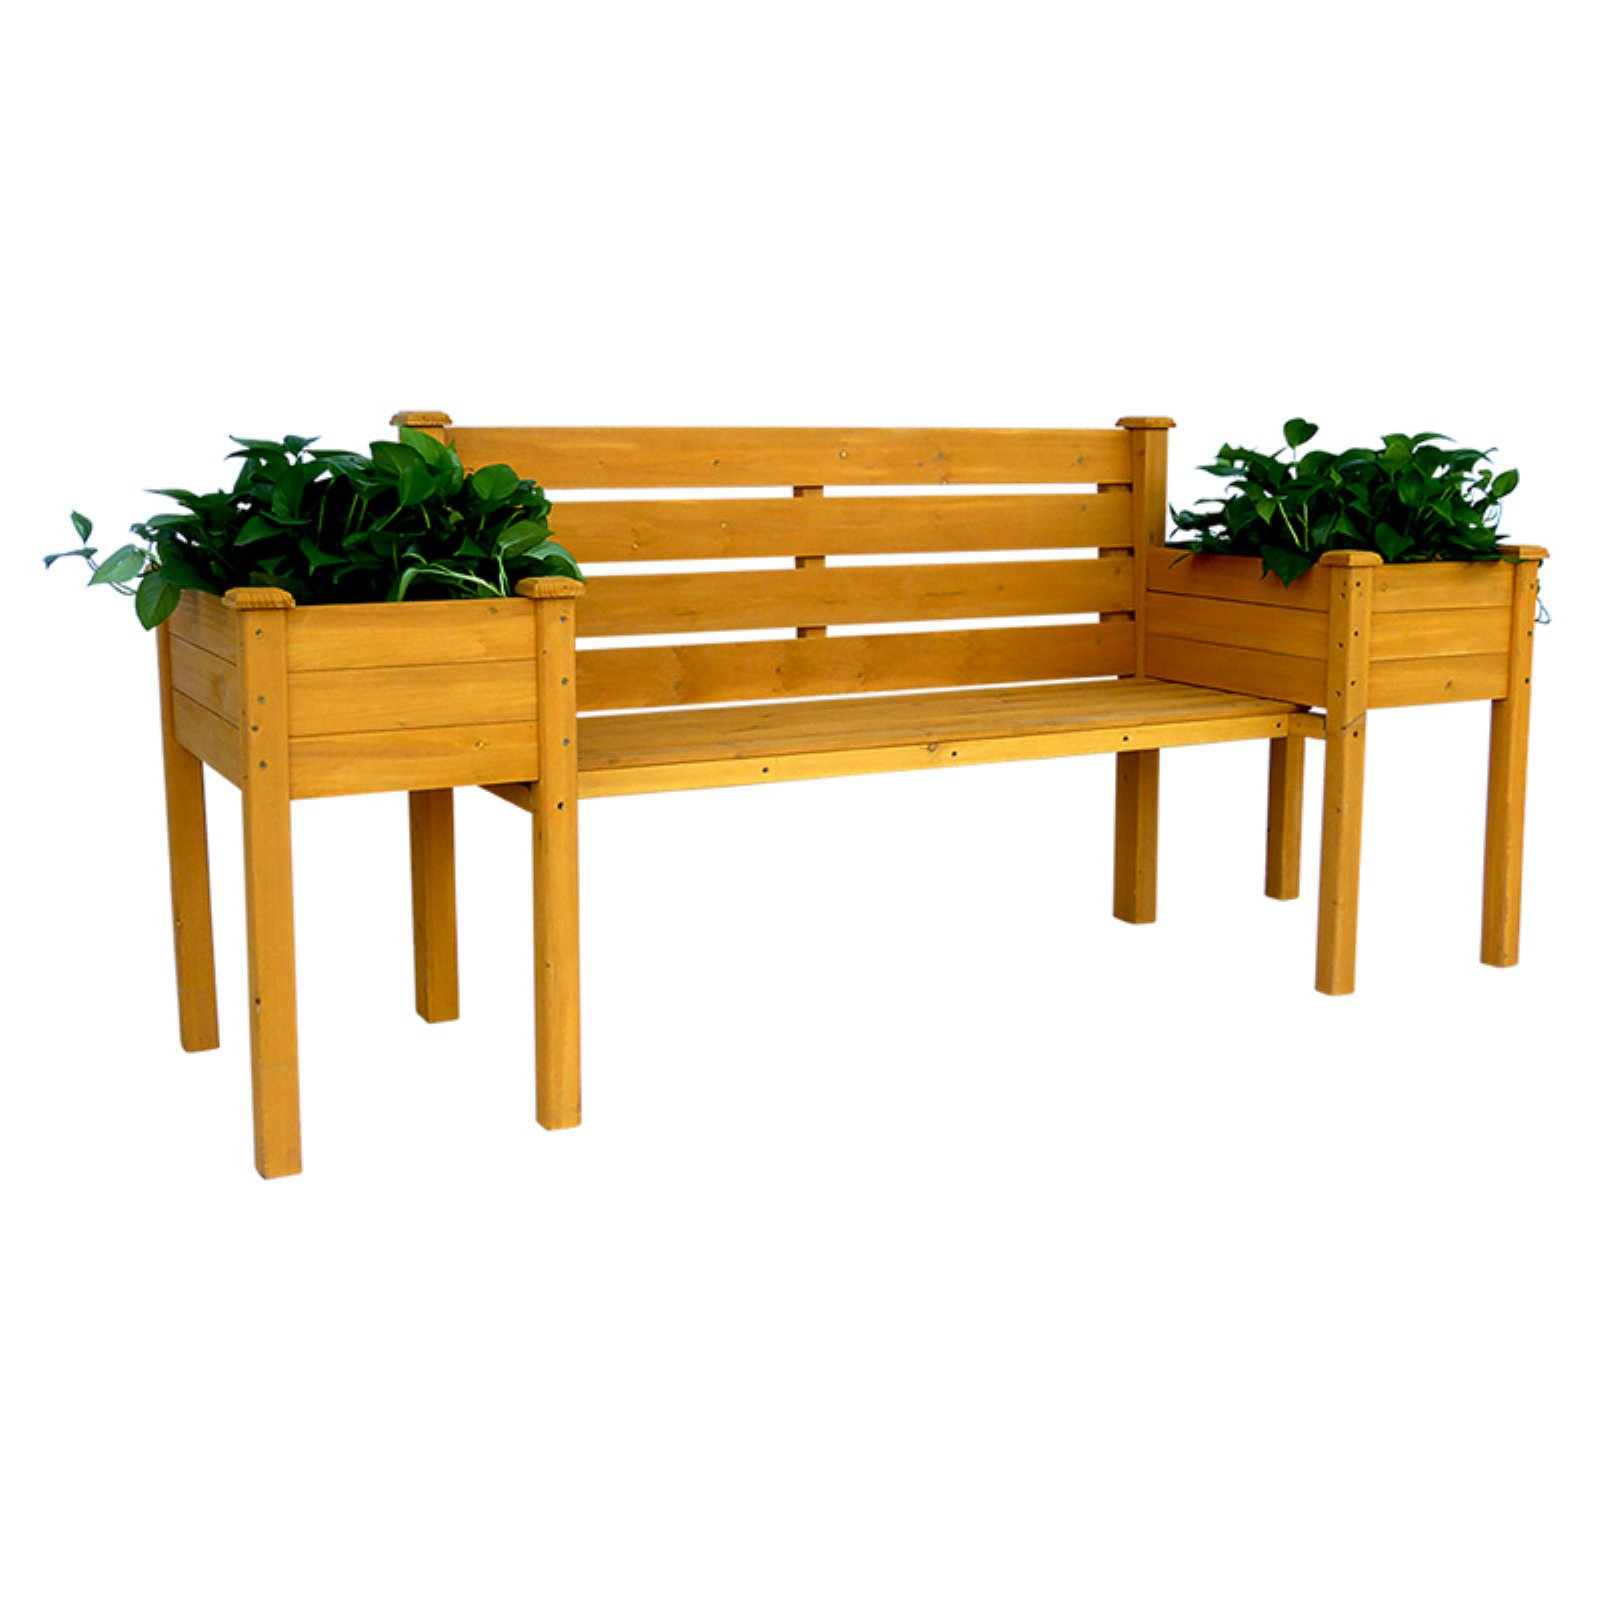 Leisure Season Planter Outdoor Bench